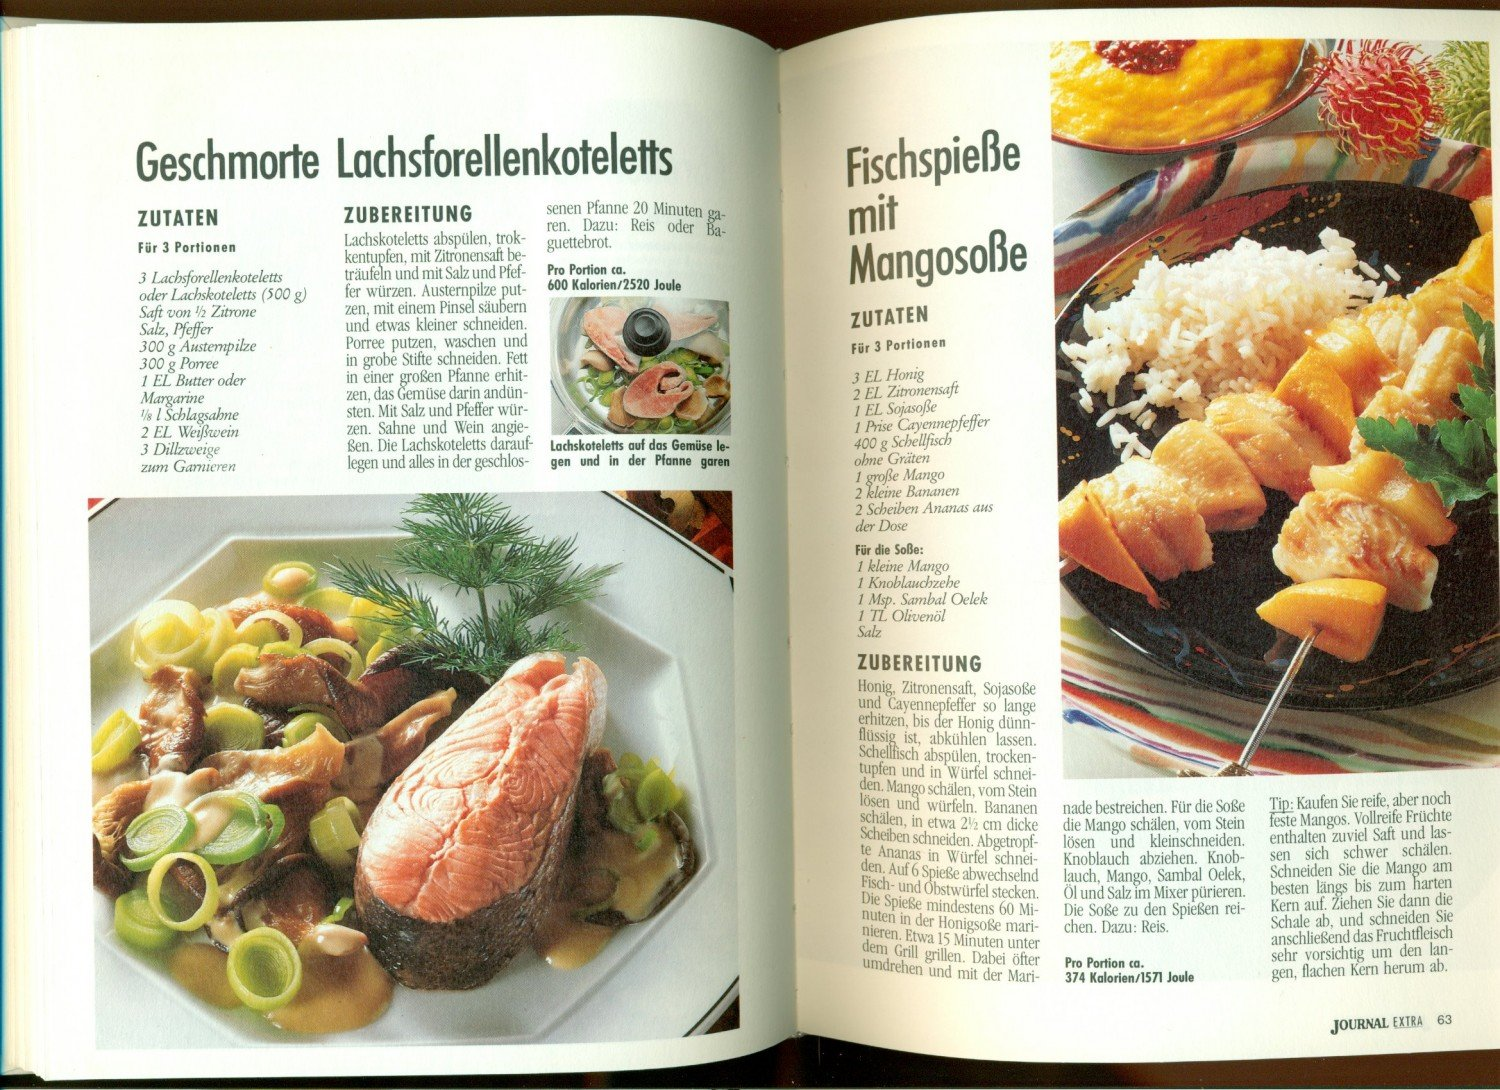 Beautiful Leichte Küche Mit Fleisch Photos - Thehammondreport.com ...